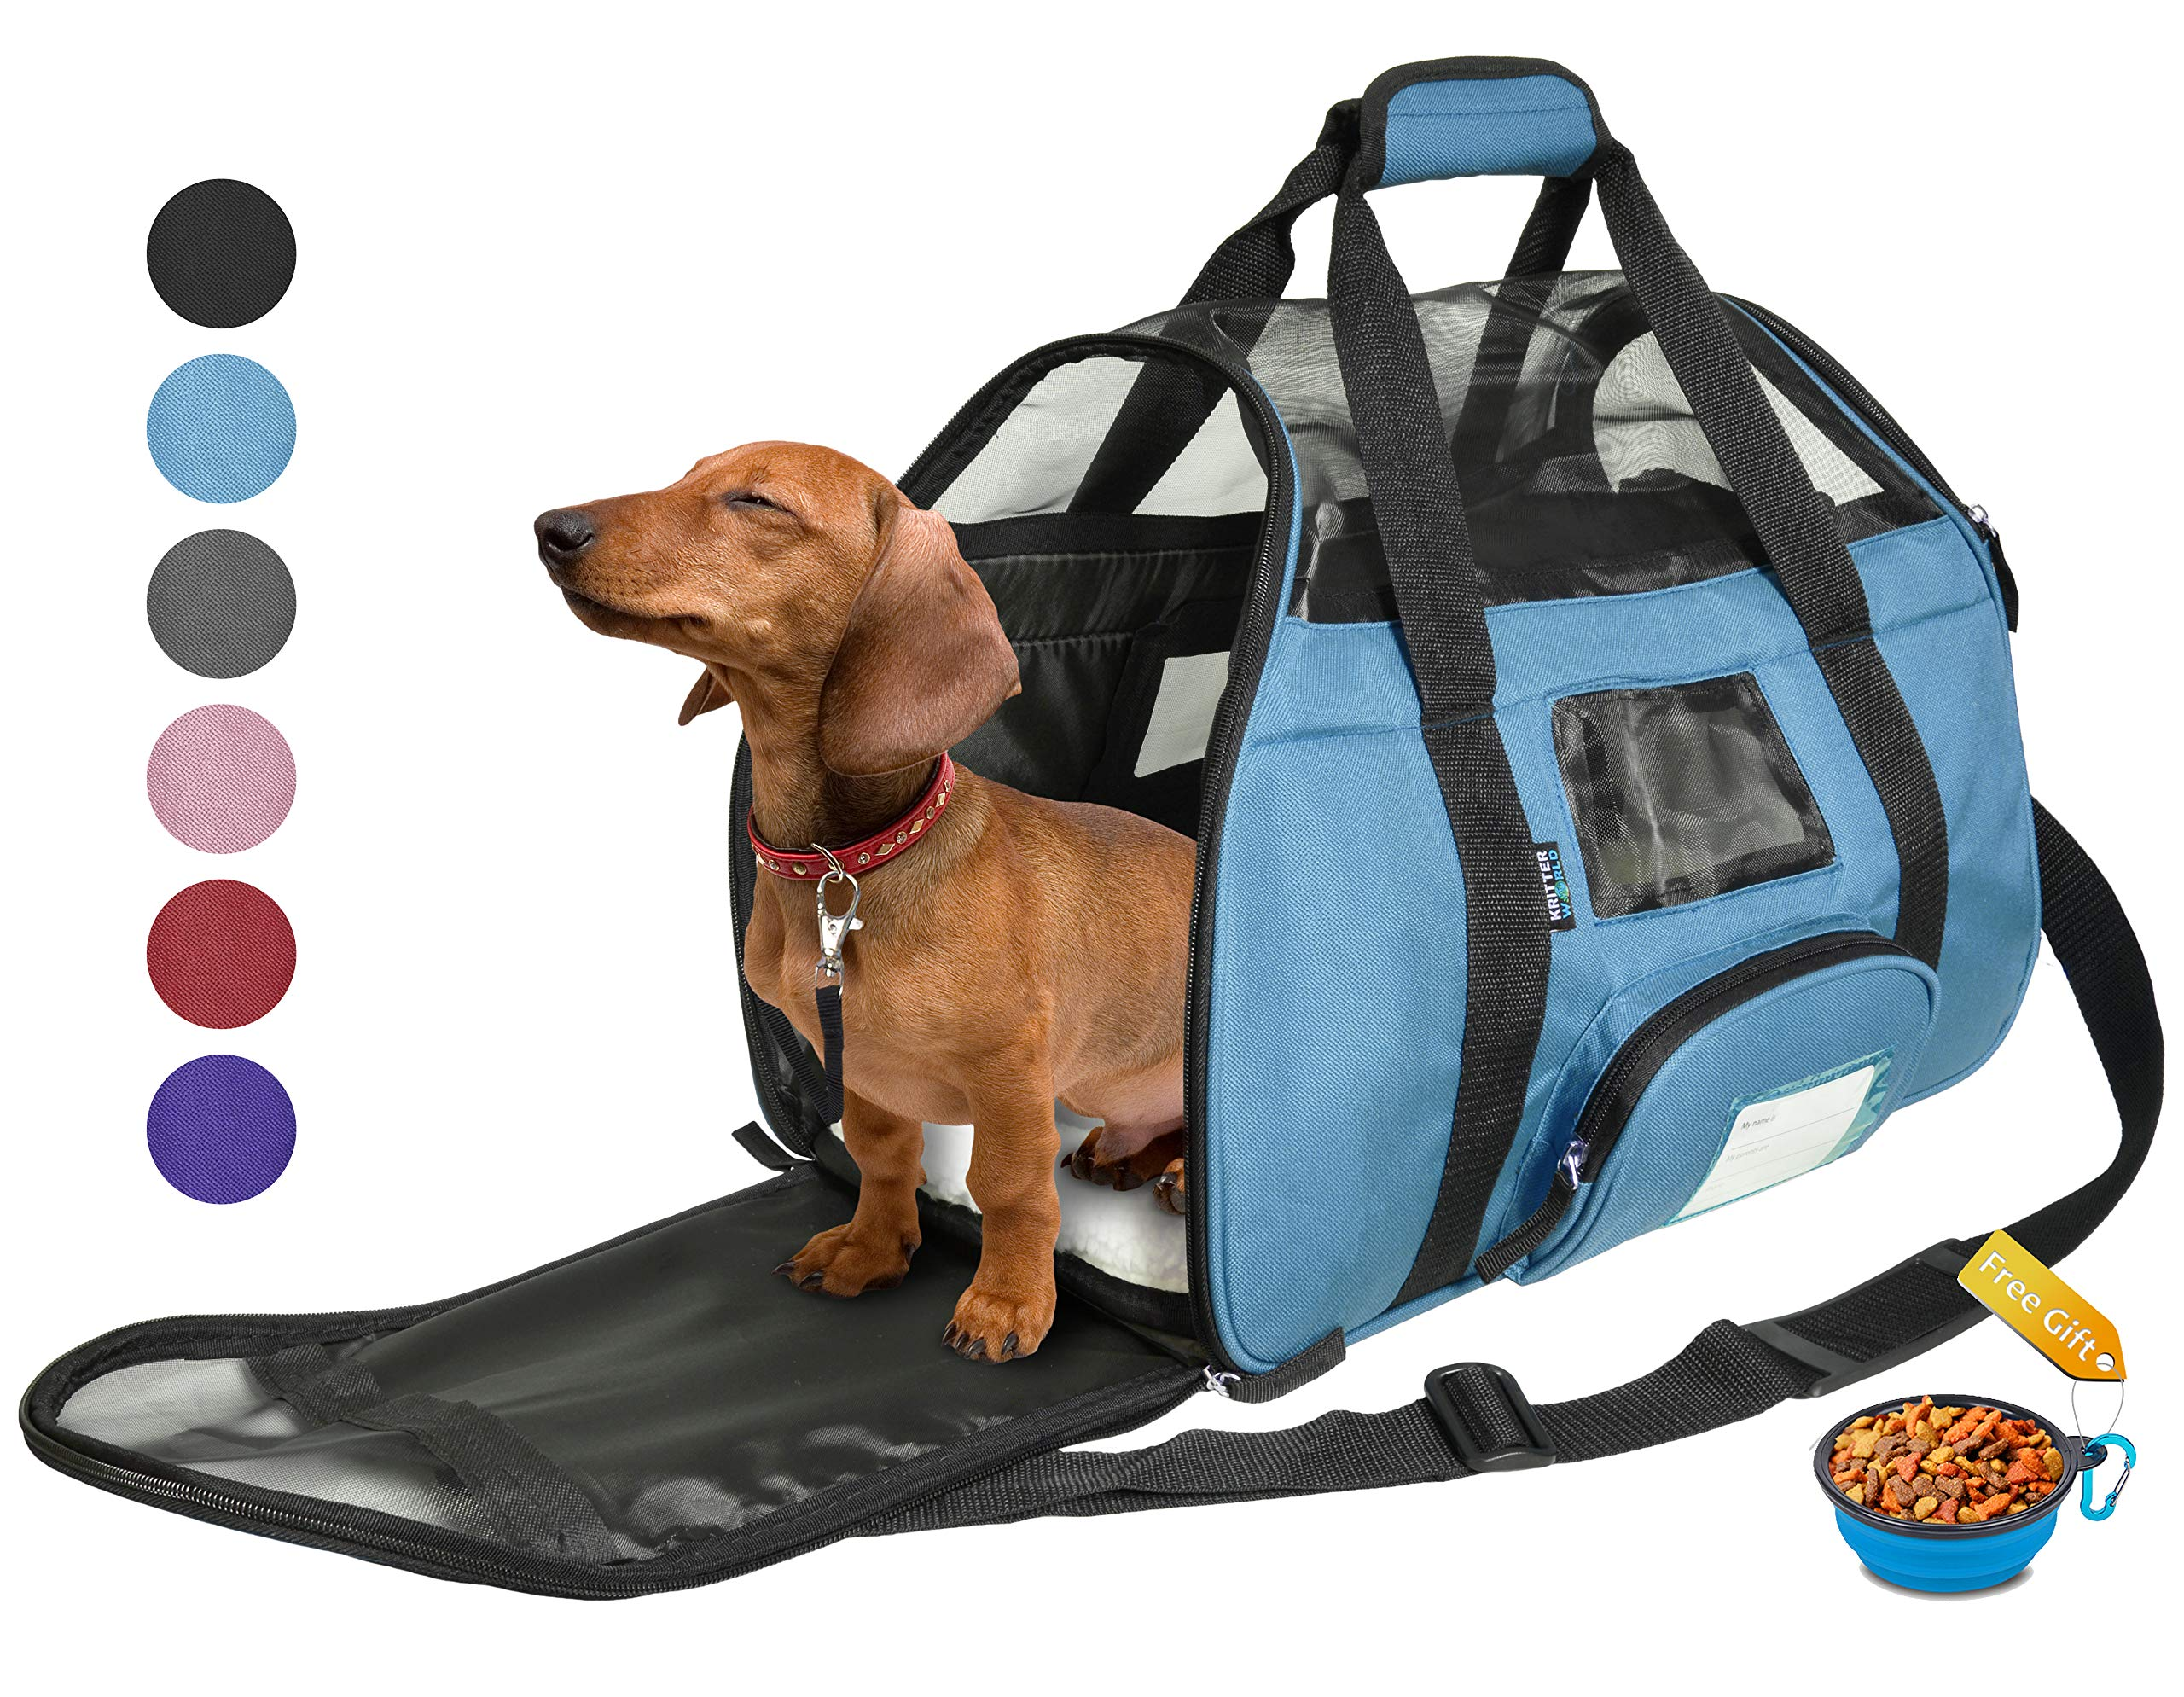 Tirrinia Soft Sided Pet Carrier Travel Bag for Small Dogs and Cats Small Animals Airline Approved with Removable Sherpa Lining Bed and Lost & Found Tag Blue